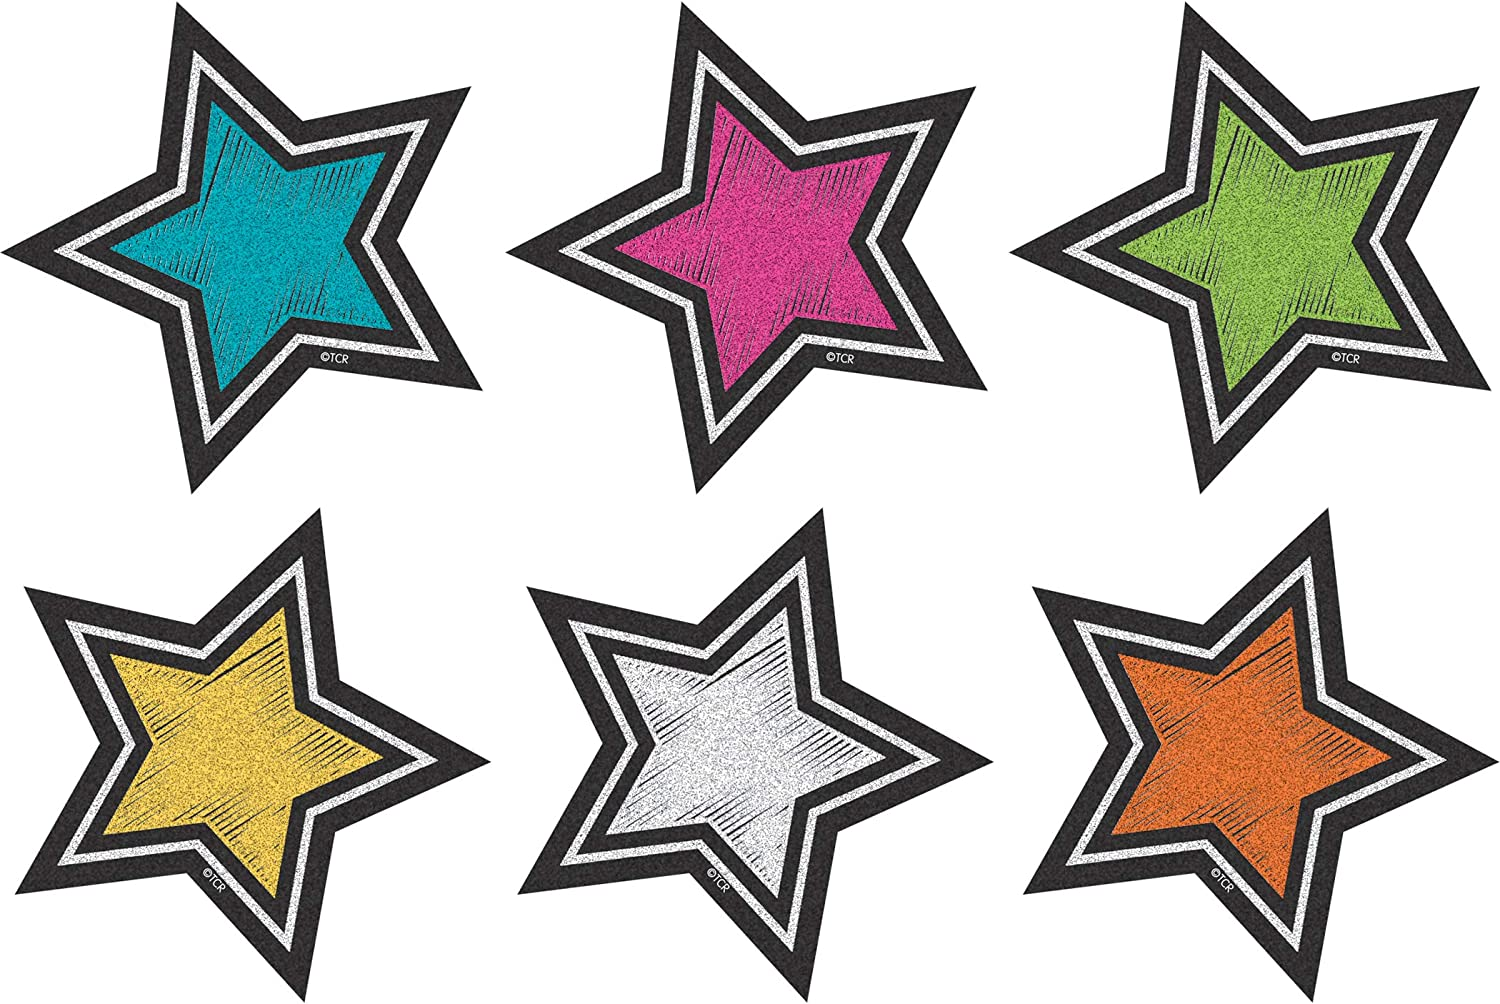 Teacher Created Resources (3554) Chalkboard Brights Stars Mini Accents